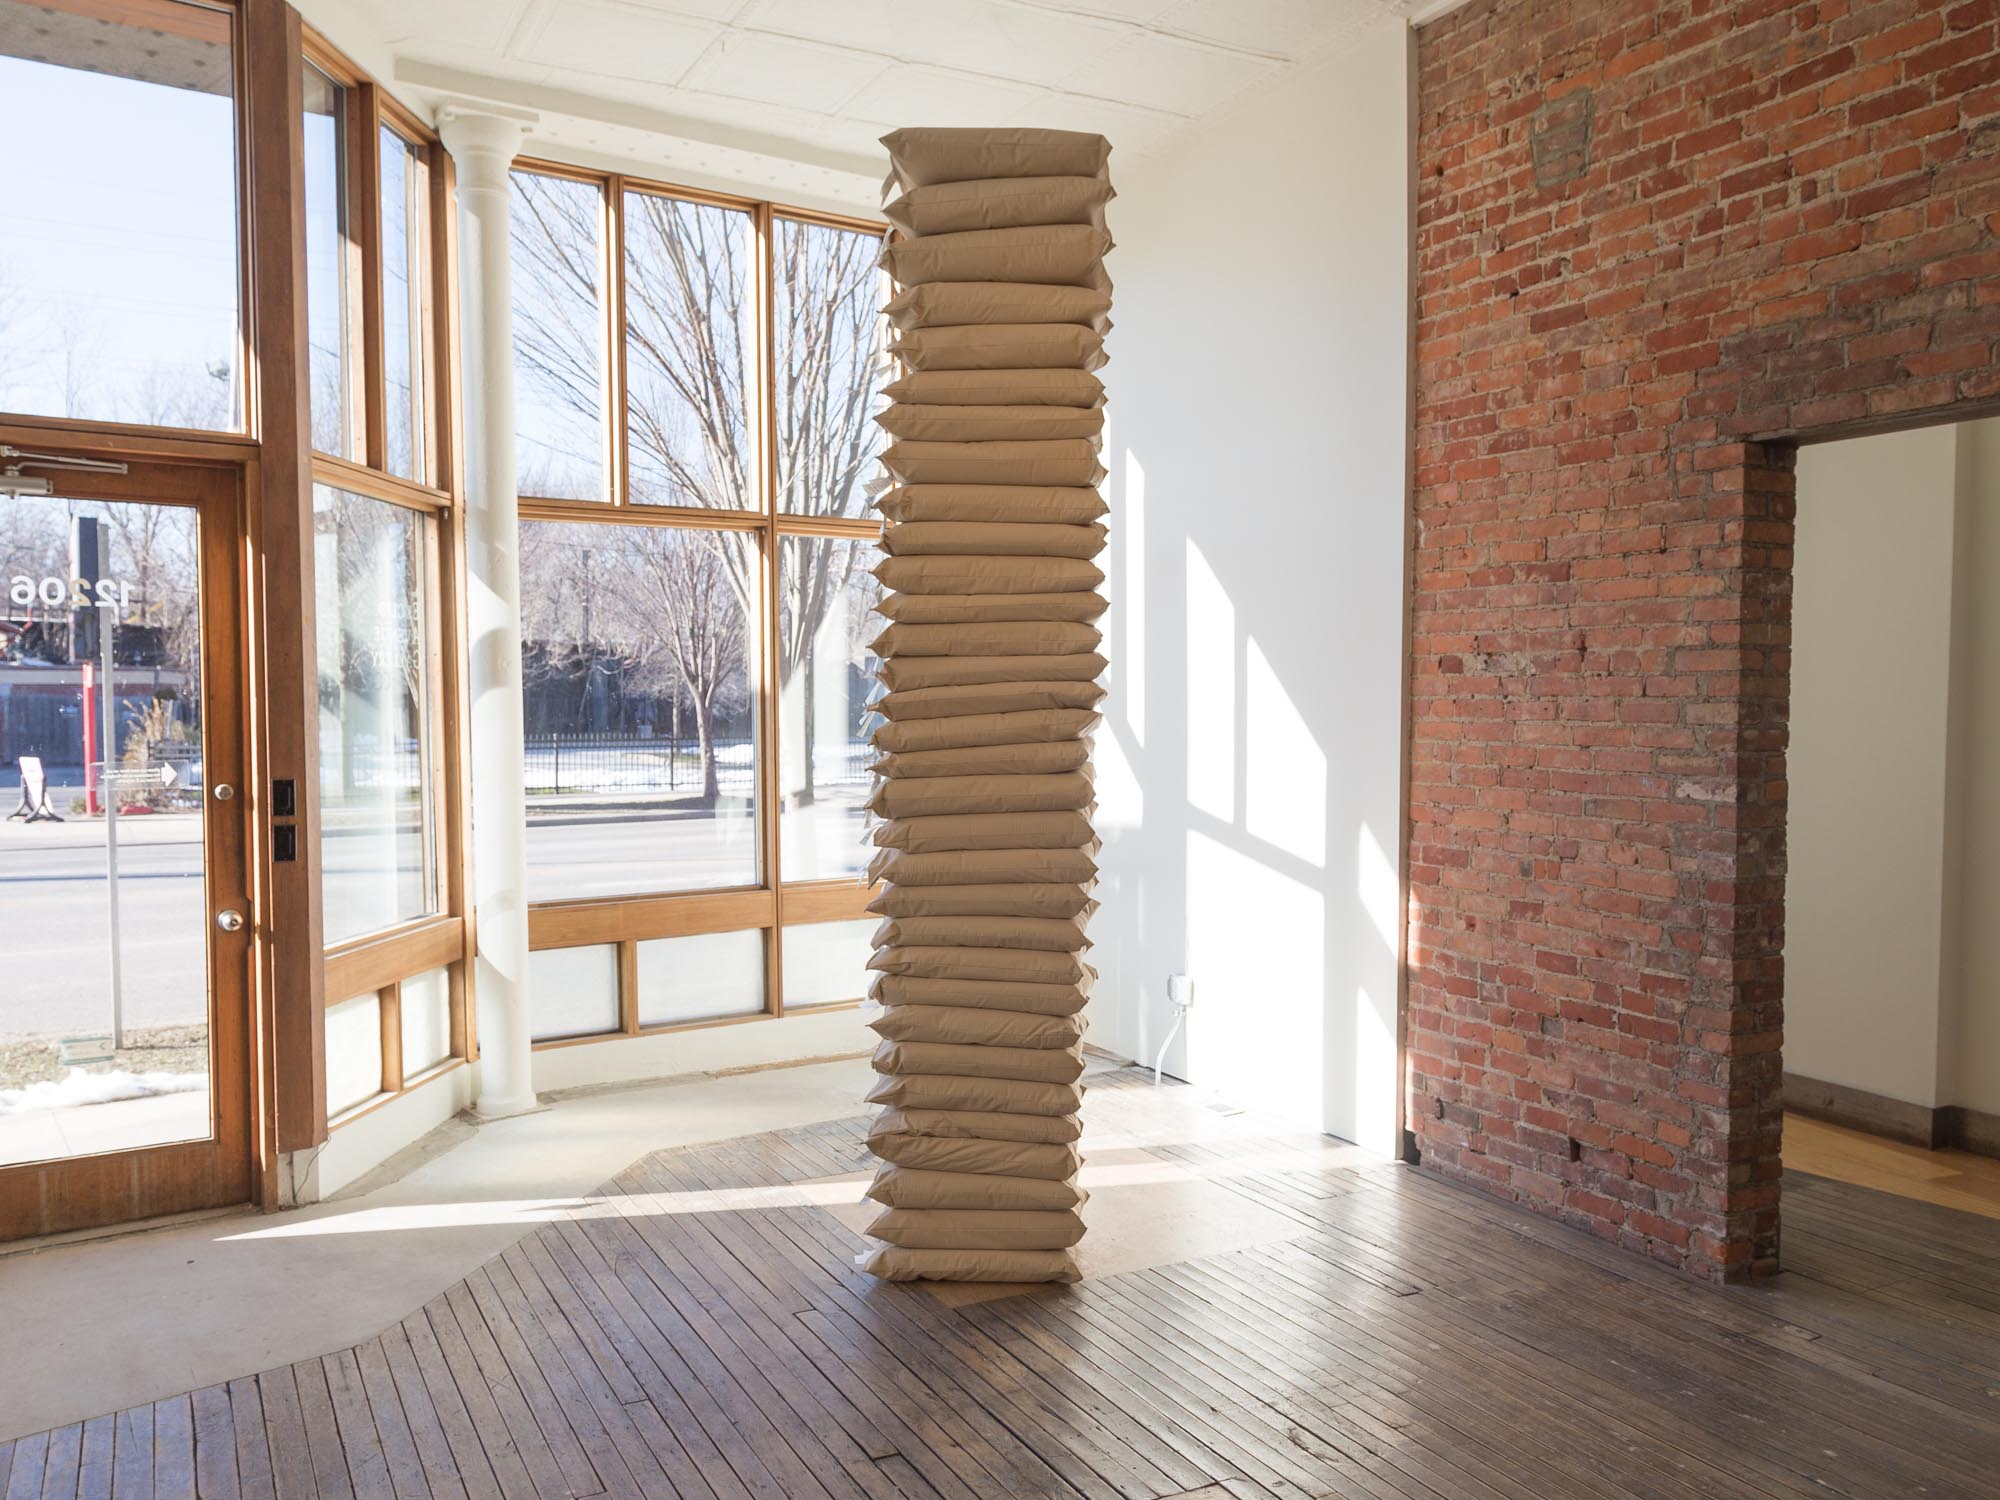 Anthony Warnick, Infinite Sleep 2018 Prisoner Produced Pillows Dementions Variable A pillar created from 32 textured vinyl covered pillows produced by and for those incarcerated.